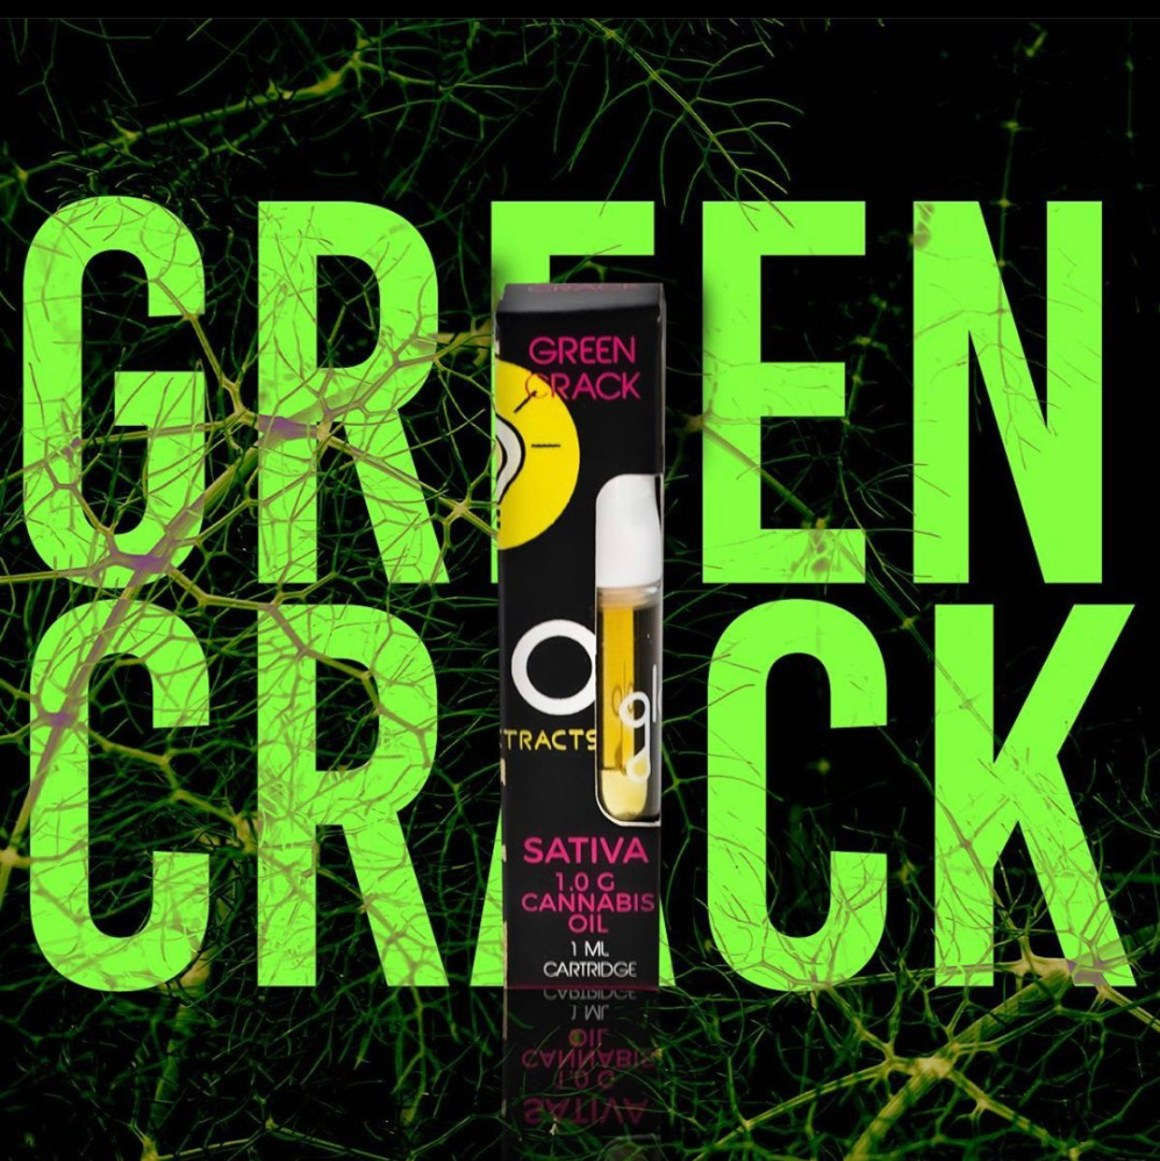 buy glo carts online, buy glo extracts online, Glo extracts carts for sale, order glo carts online, Glo carts